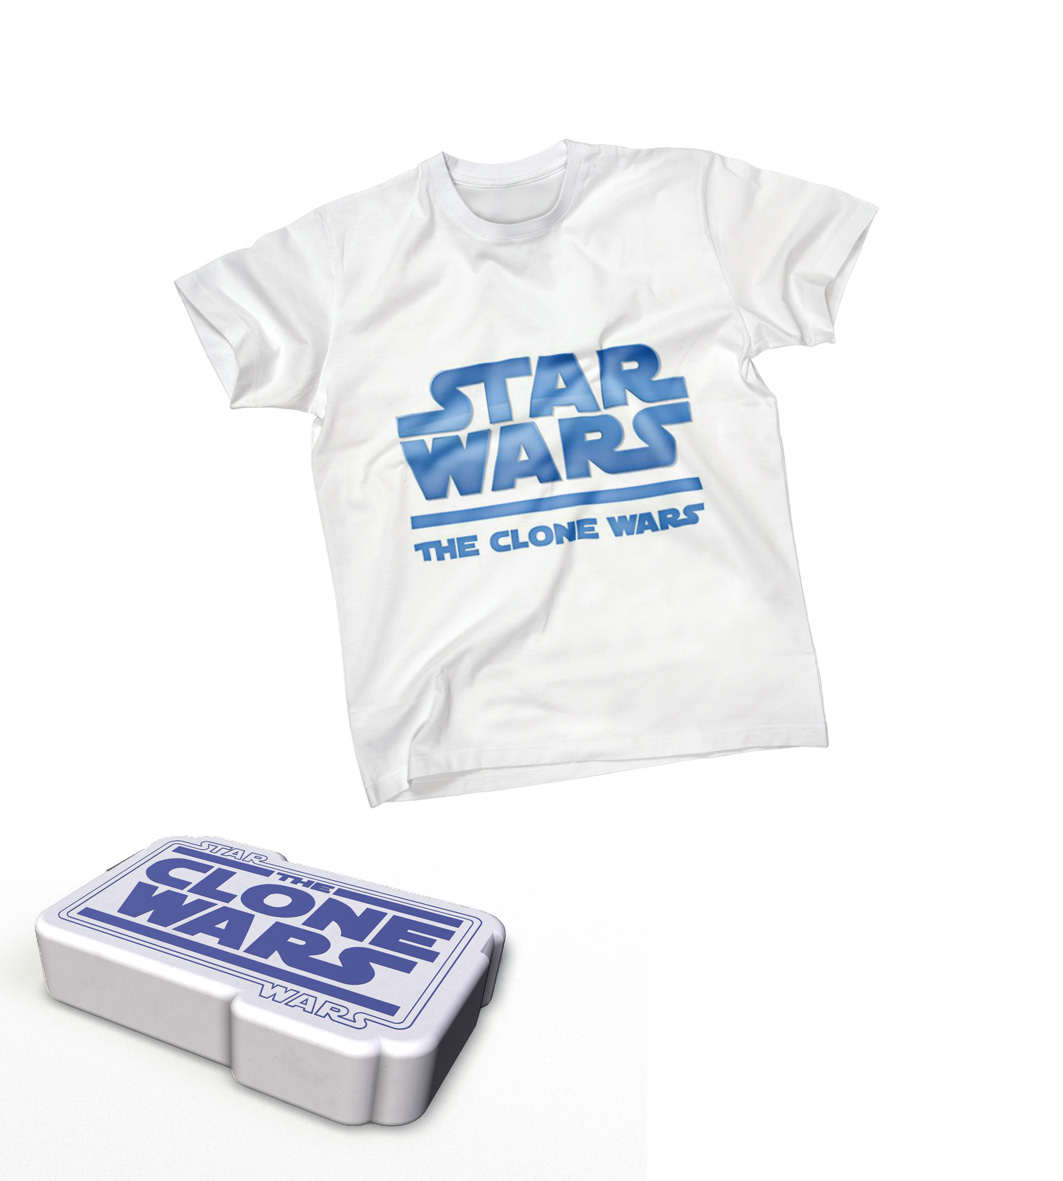 Simulatiion Star Wars white t-shirt